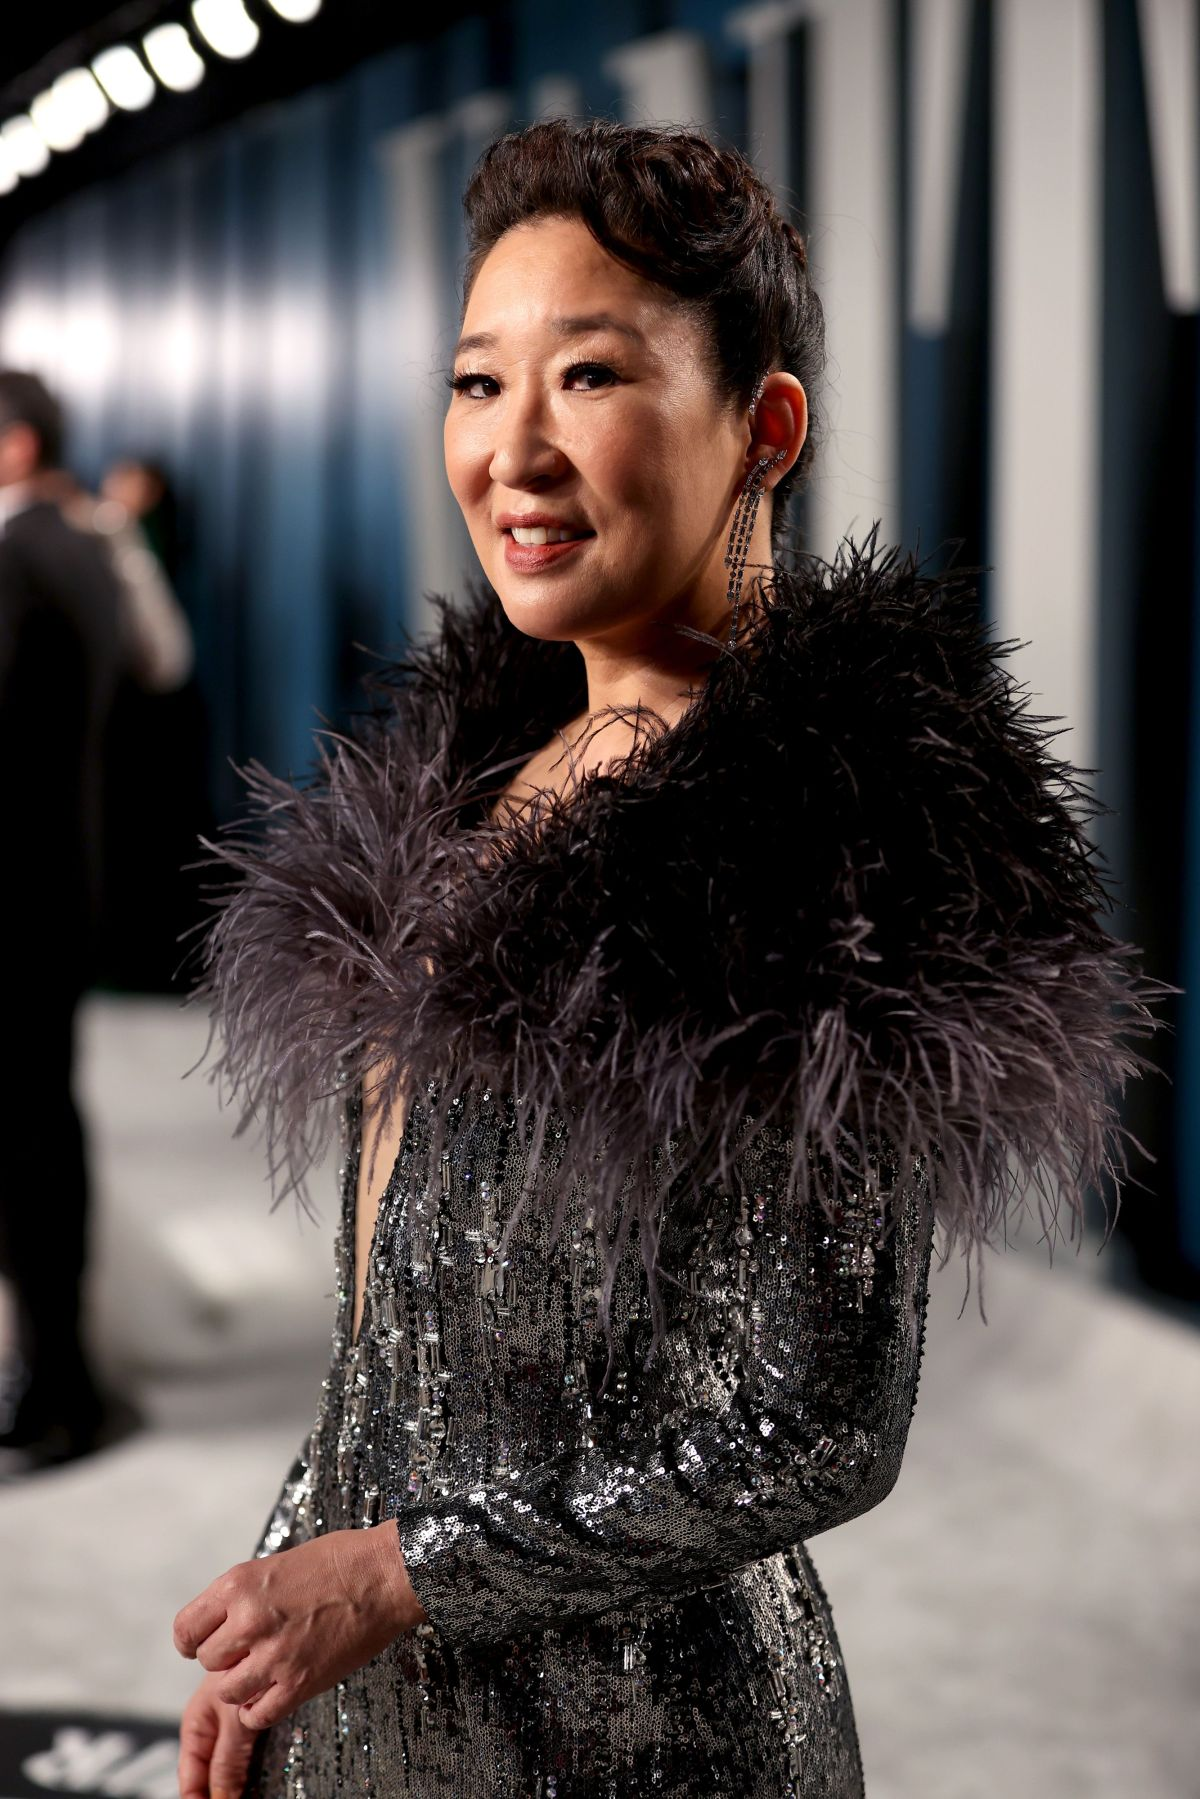 Killing Eve' Star Sandra Oh's Diet Includes Kale Salad Snacks